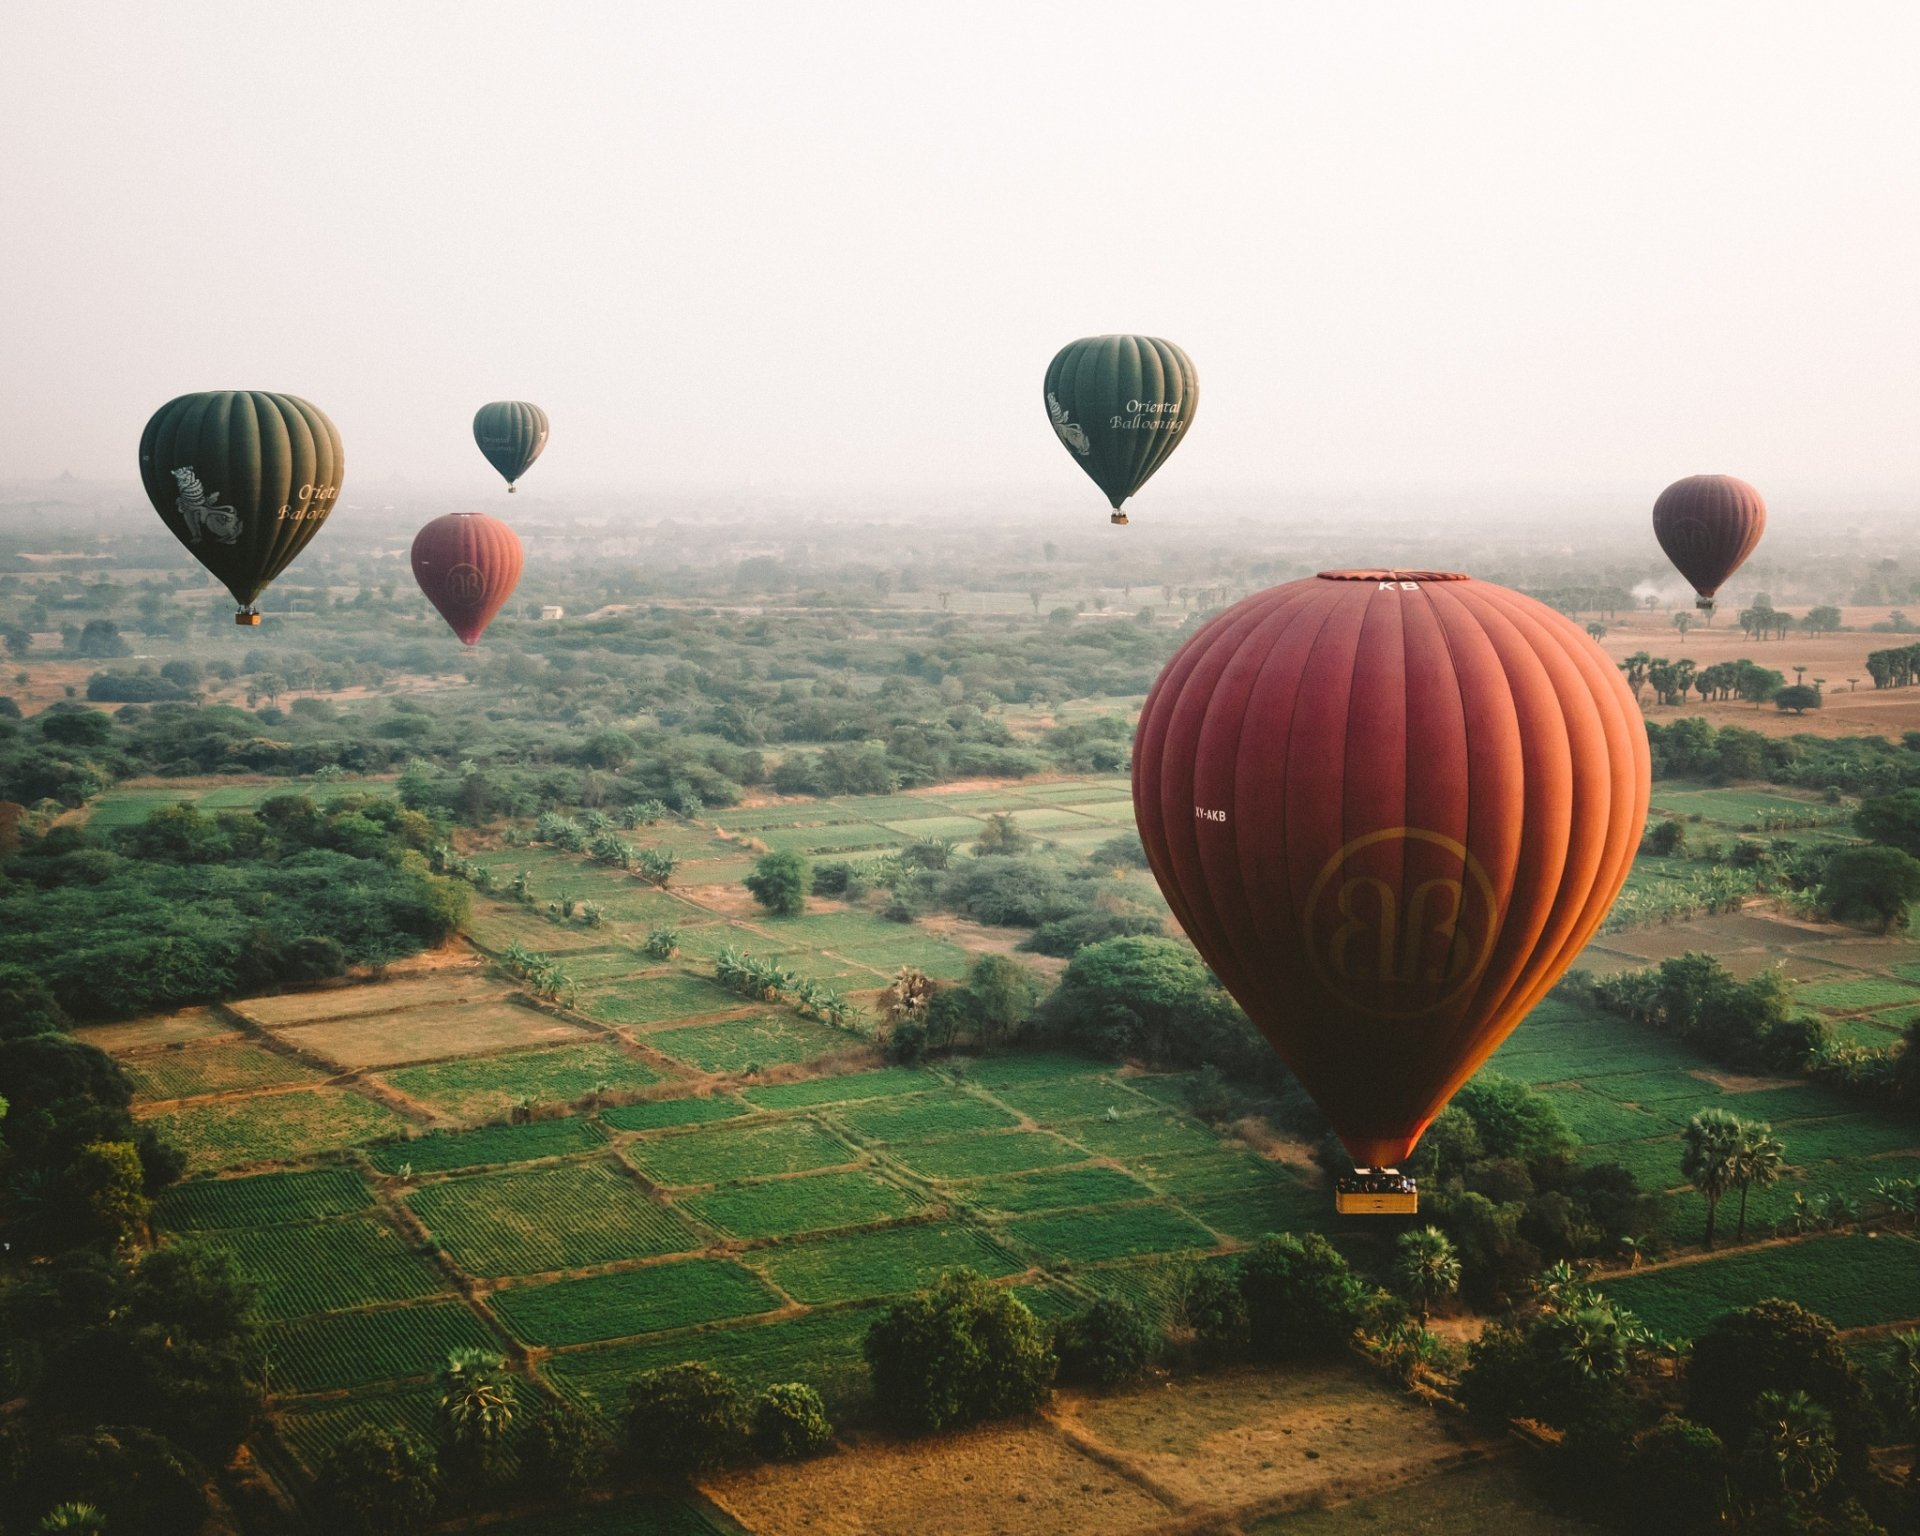 Vehicles - Hot Air Balloon  Landscape Vehicle Wallpaper